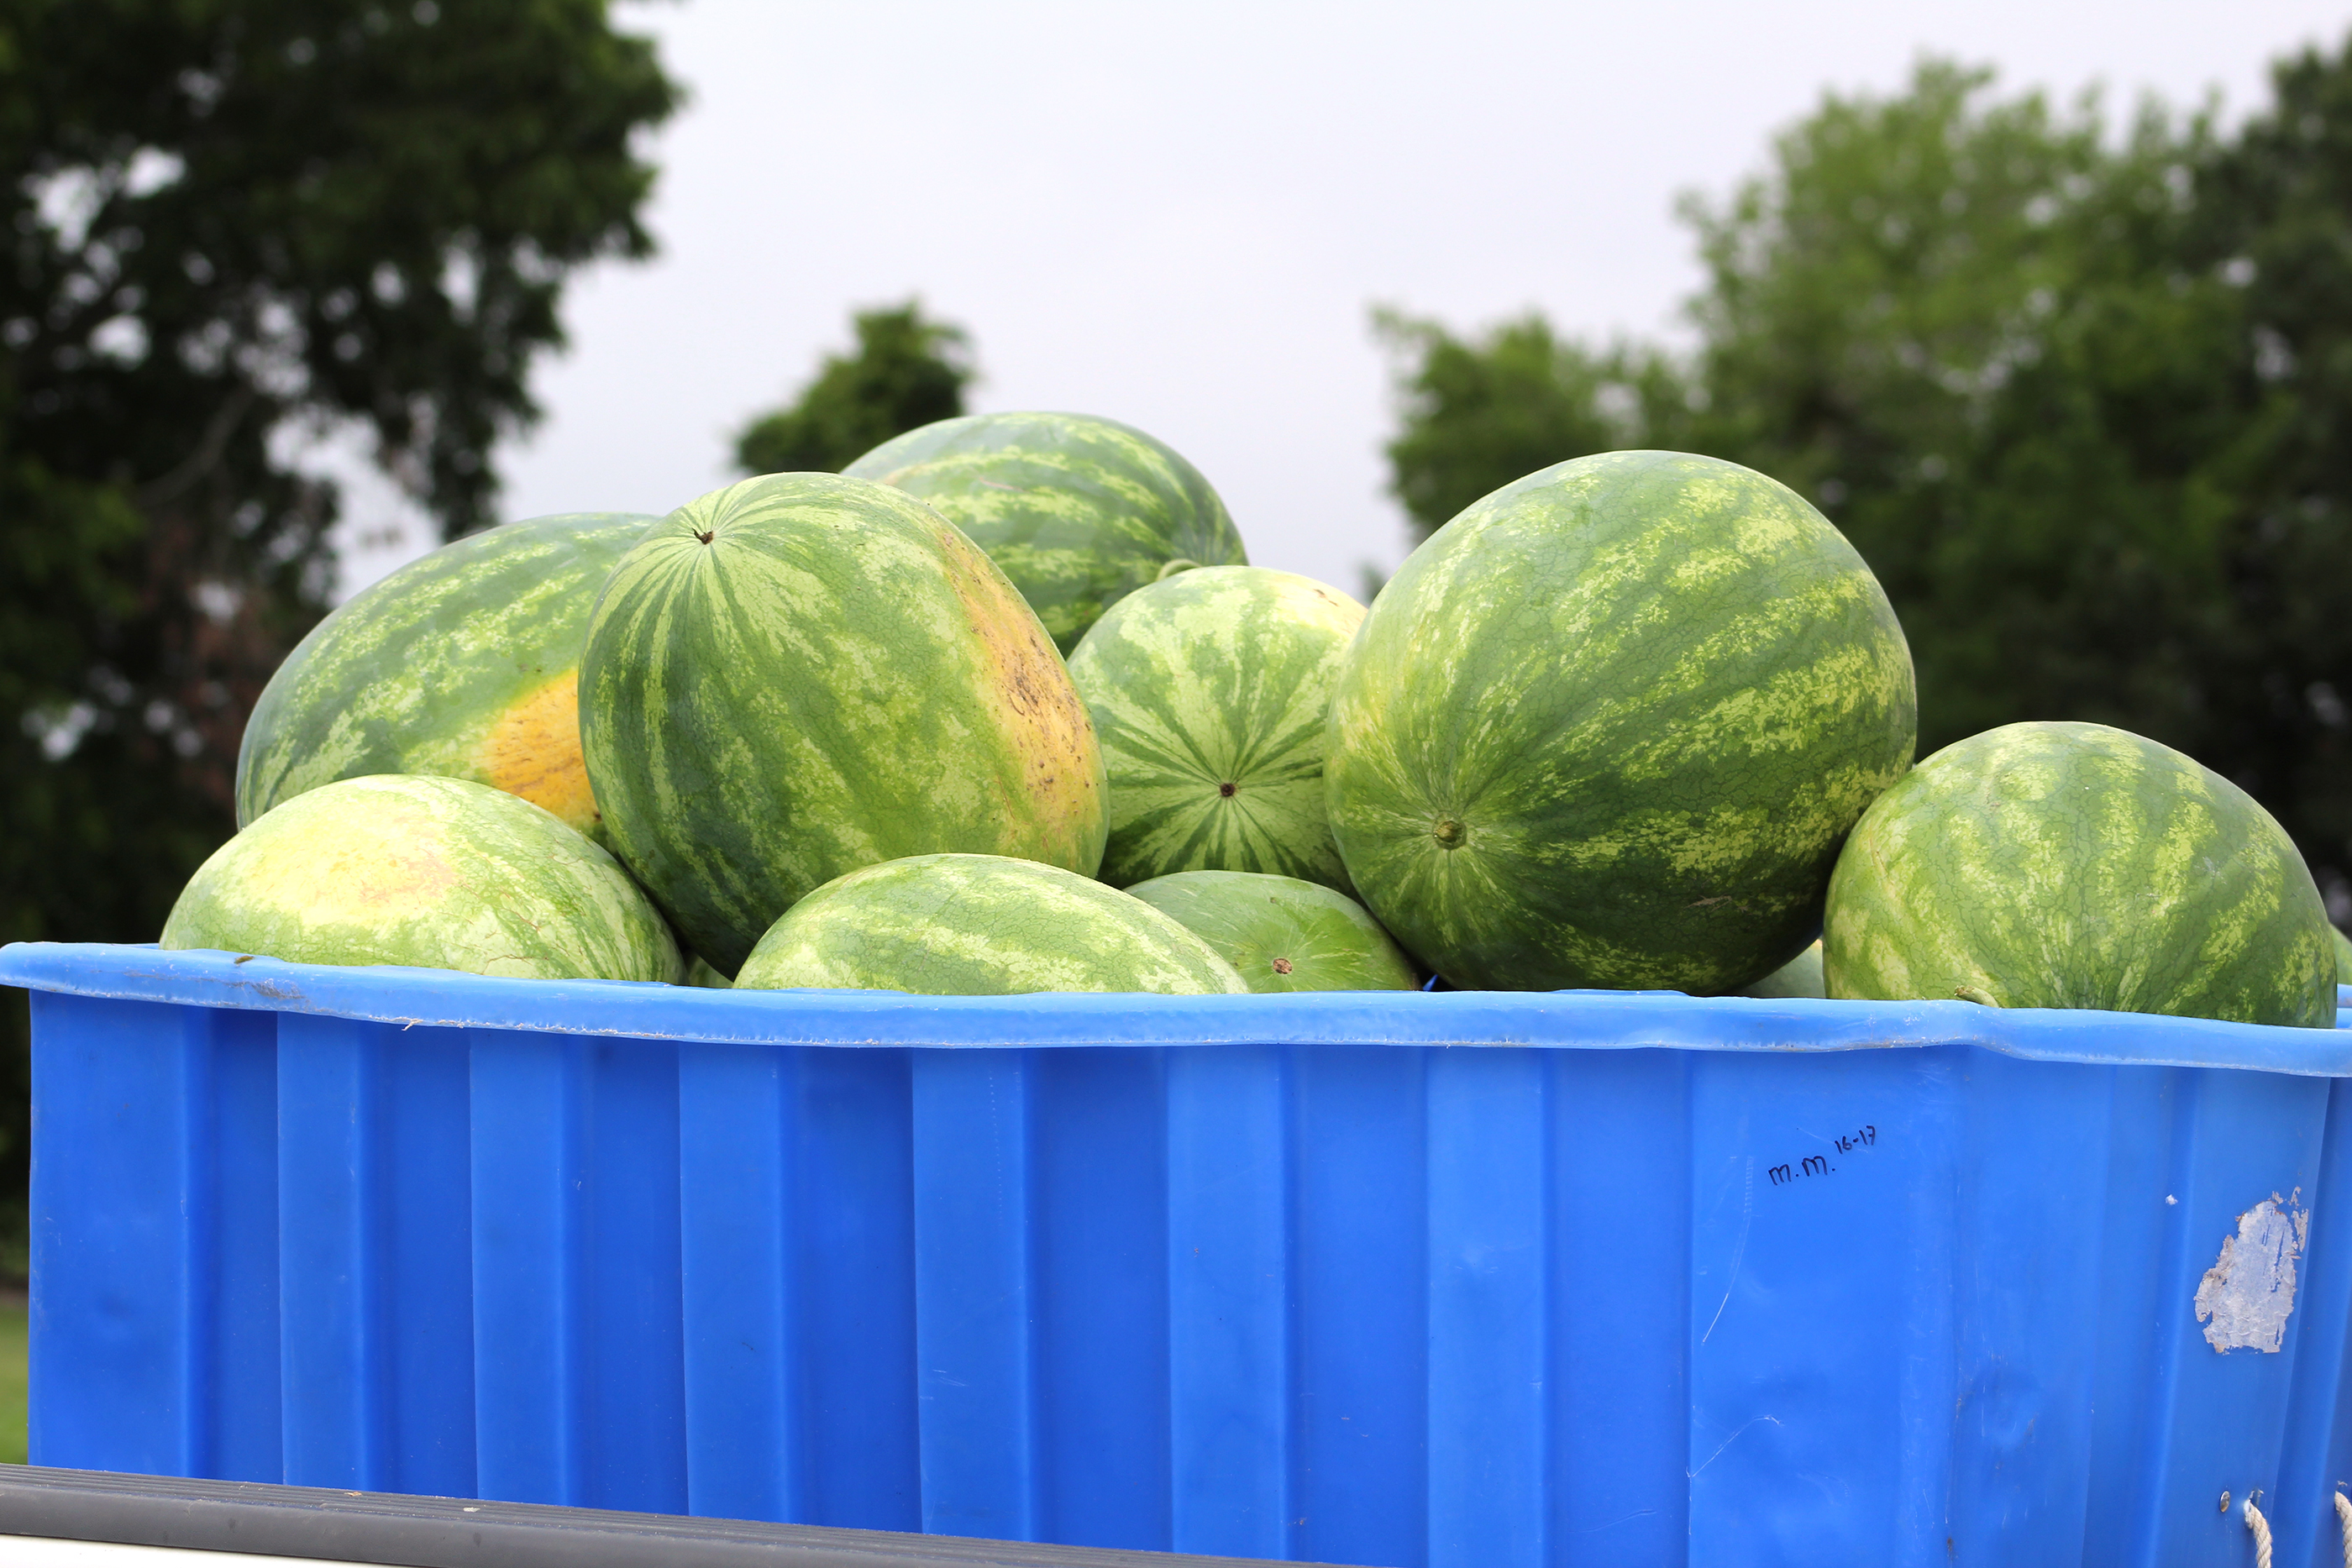 Watermelons sit in a truck after being harvested on the UGA Tifton campus.